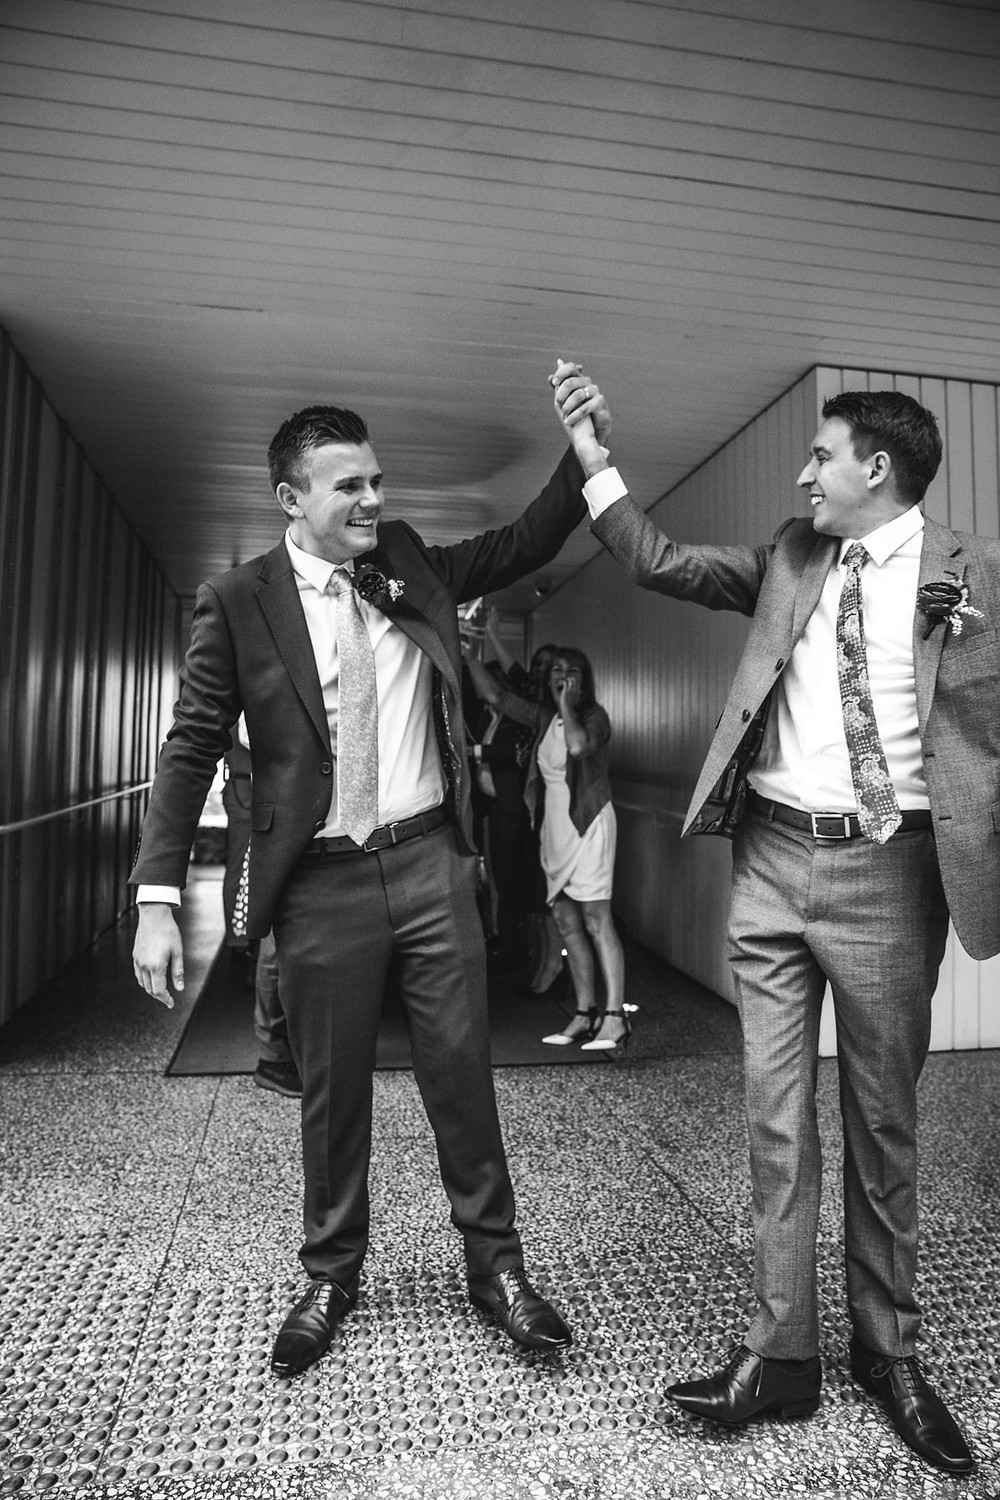 Celebrating Diversity A Same Sex Wedding de lumiere photography